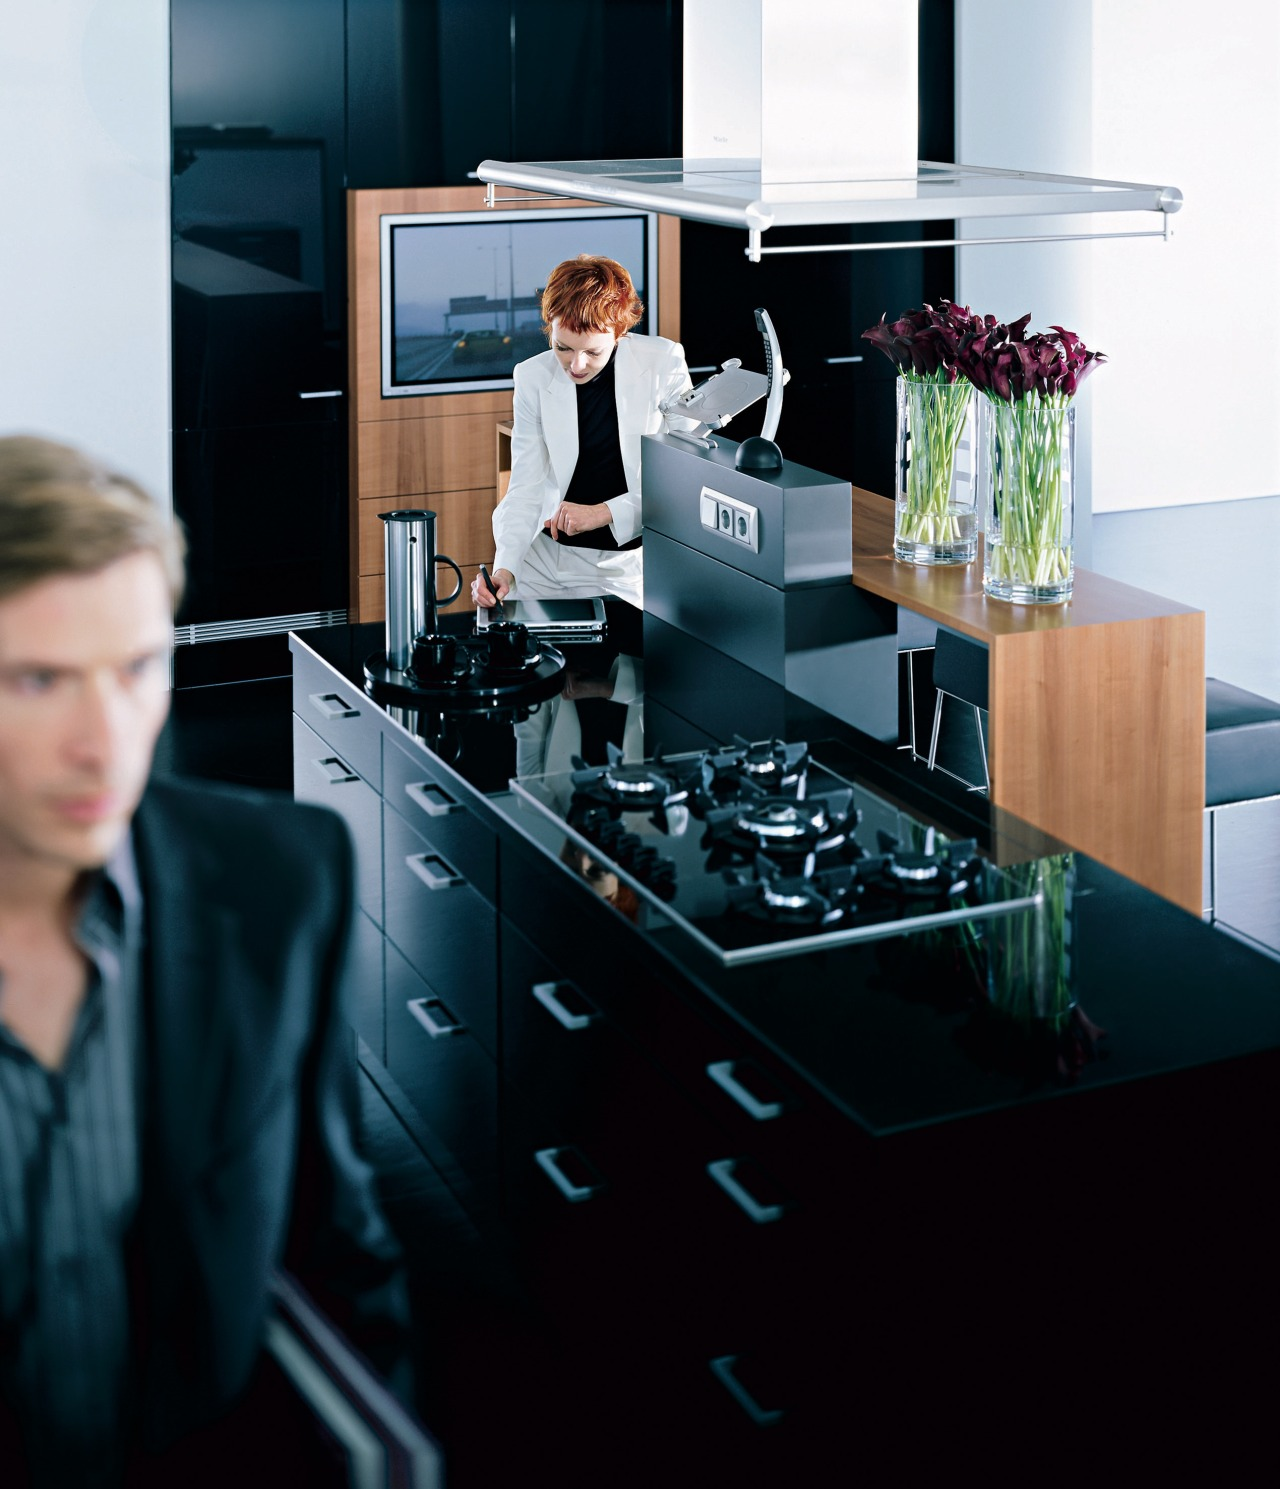 Close view of the cabinetry furniture, interior design, kitchen, product design, table, black